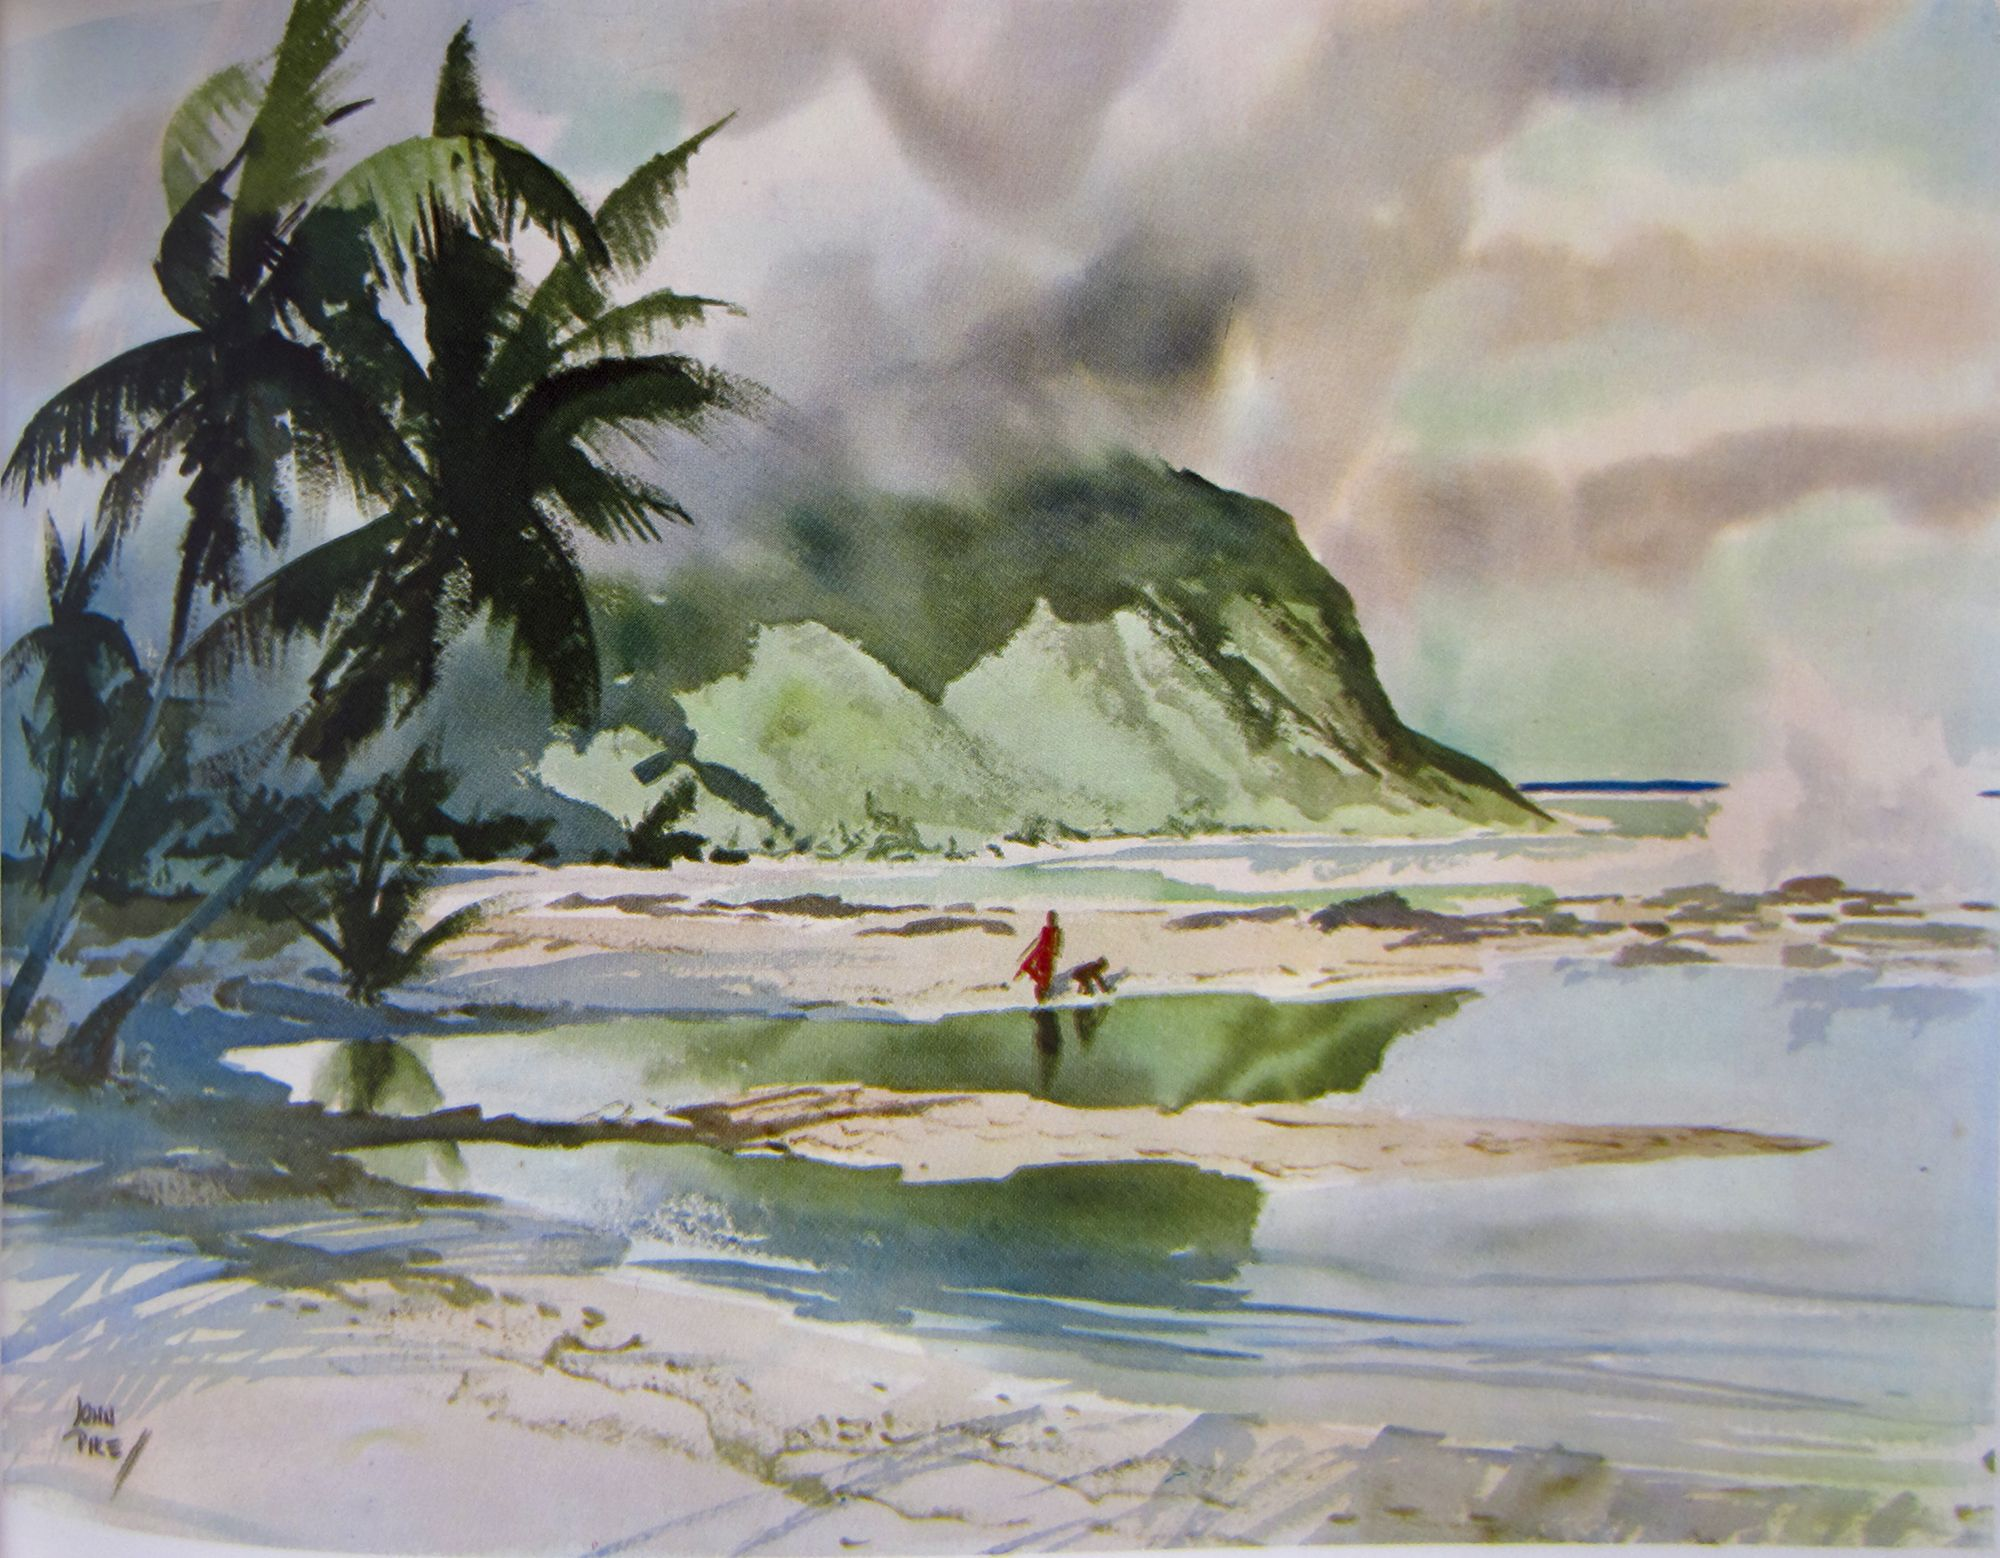 John Pike watercolor. | Art - Traditional | Pinterest | Aquarell ...